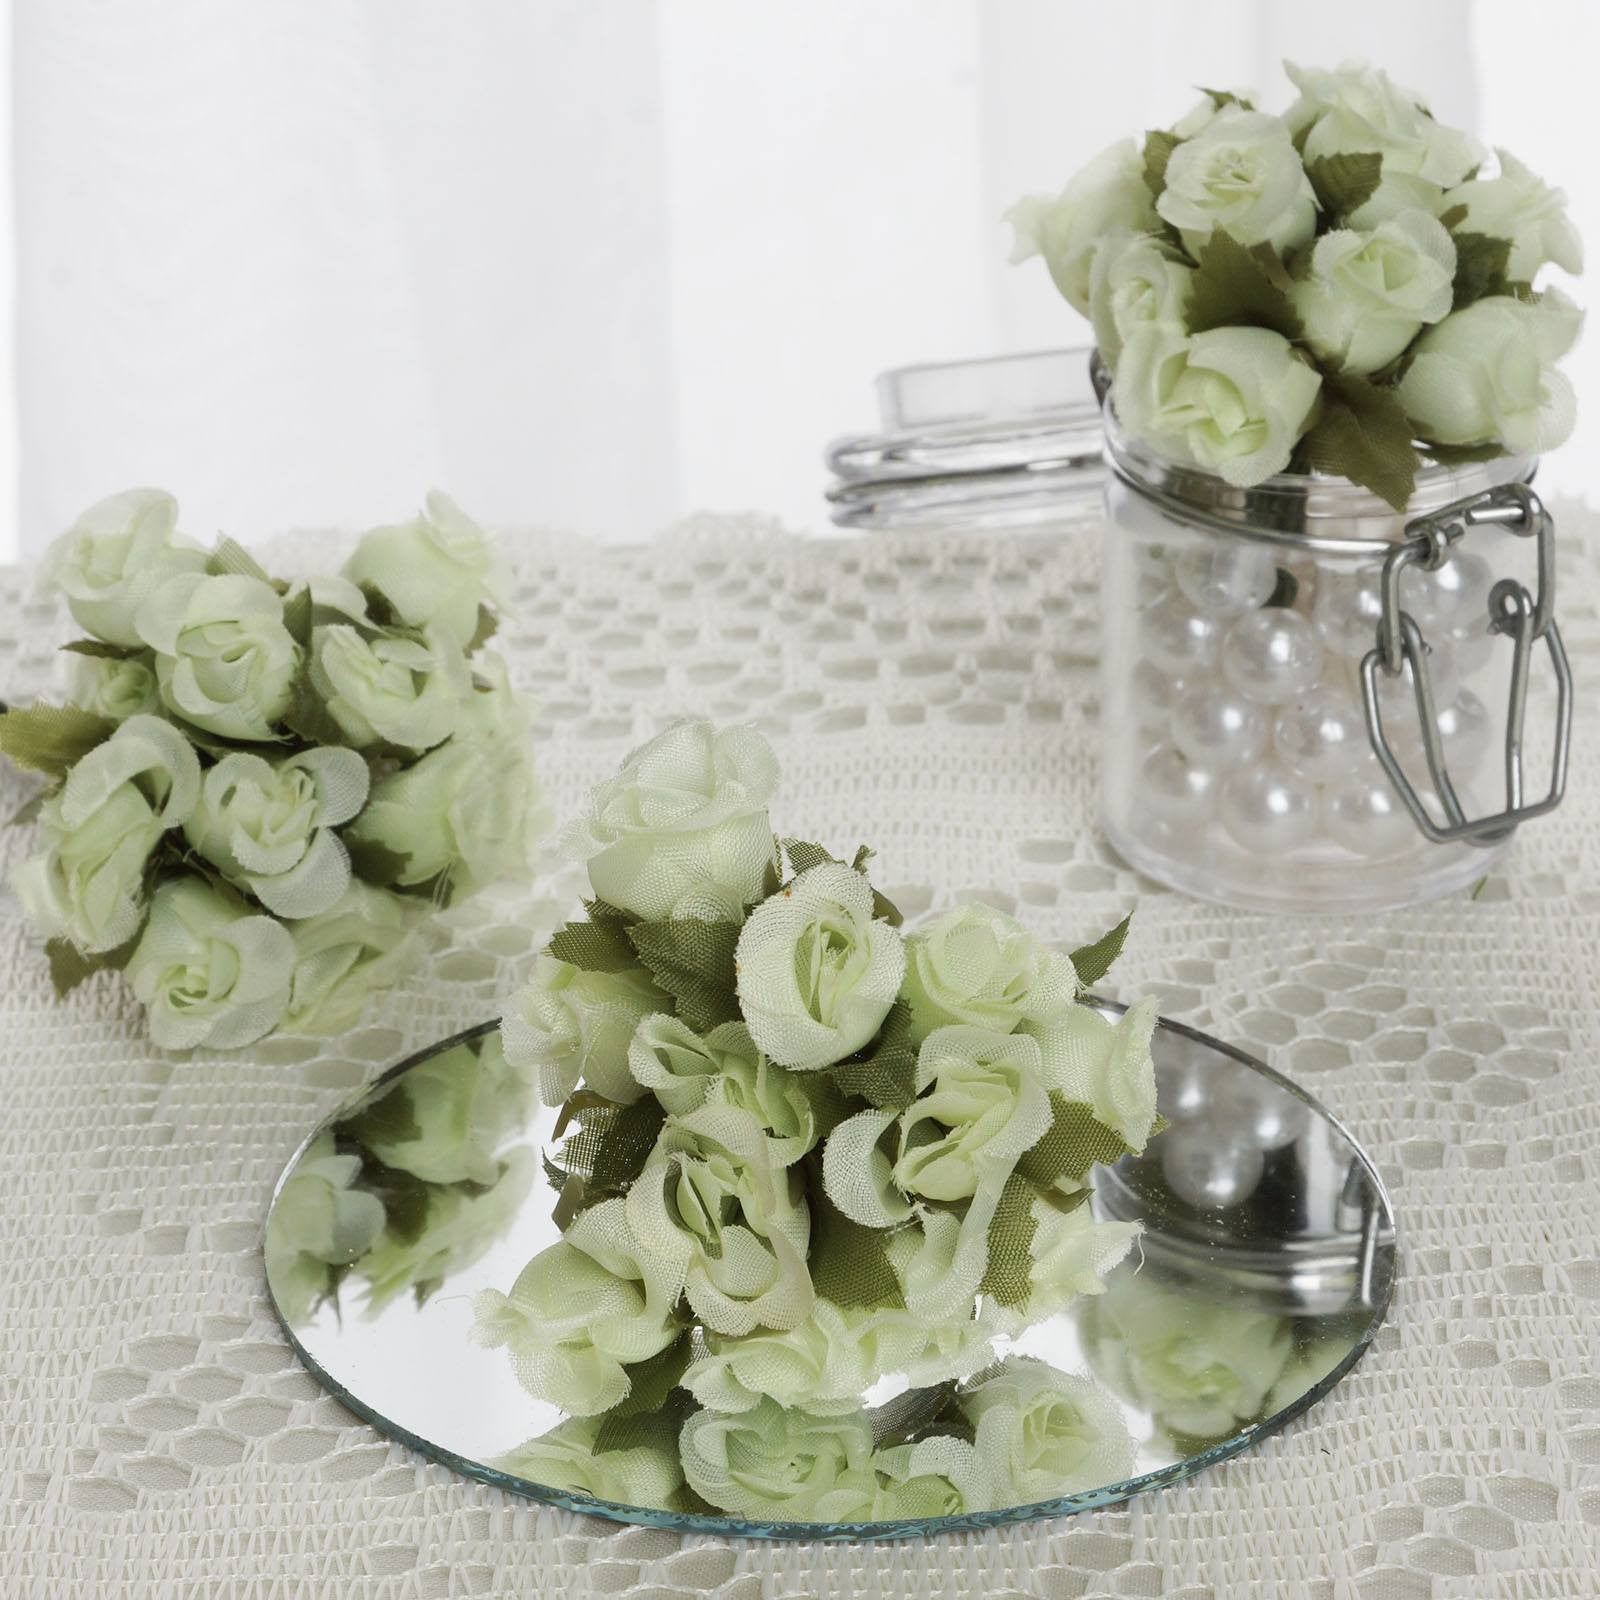 Pin By Summah Mo On Wedding Ideas Non Decor: 144 Poly Rose Buds Bouquet Flowers - Mint